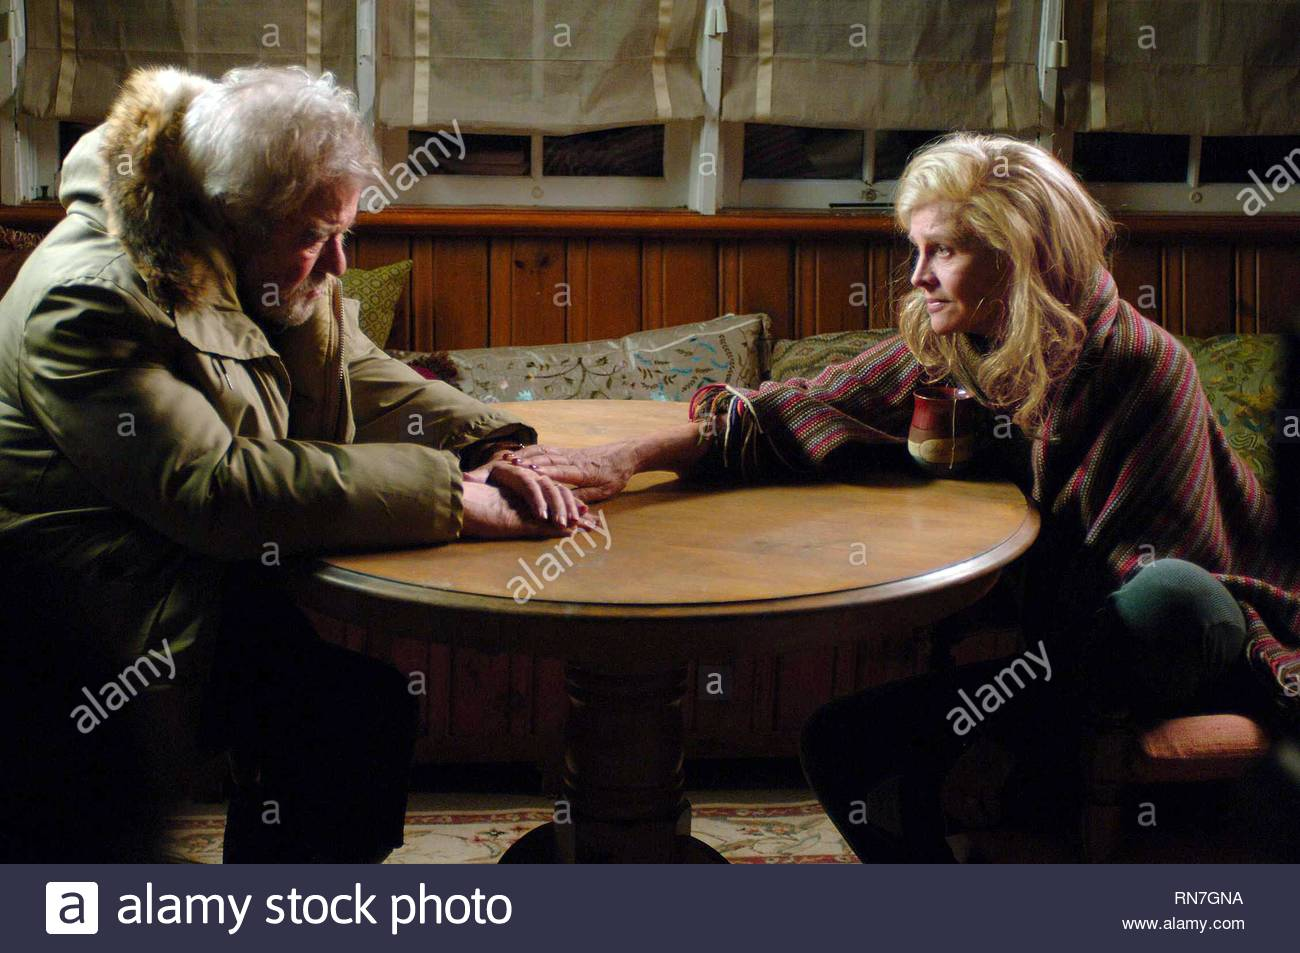 GORDON PINSENT,JULIE CHRISTIE, AWAY FROM HER, 2006 - Stock Image